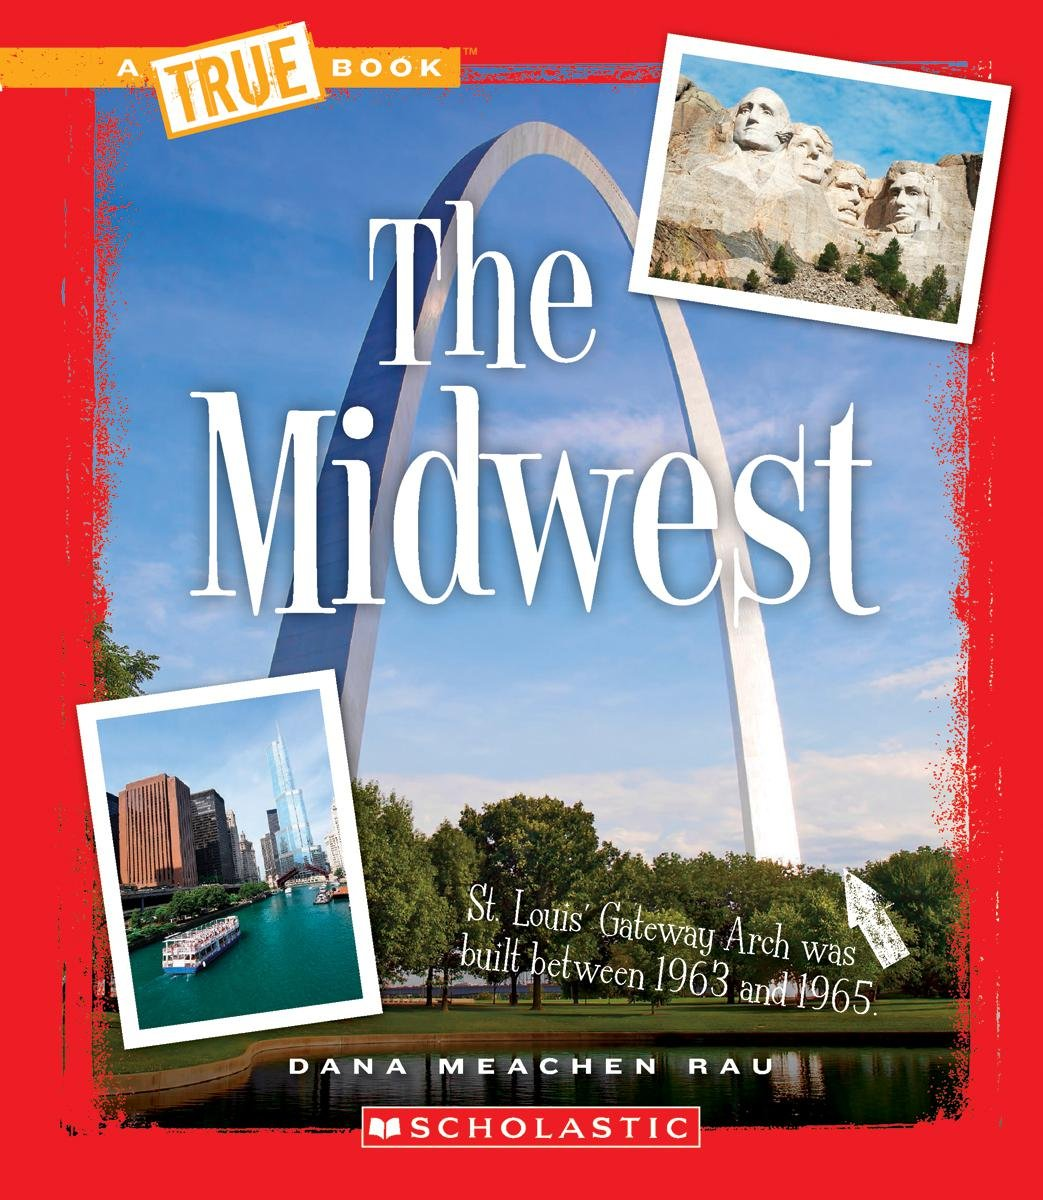 the-midwest-true-books-u-s-regions